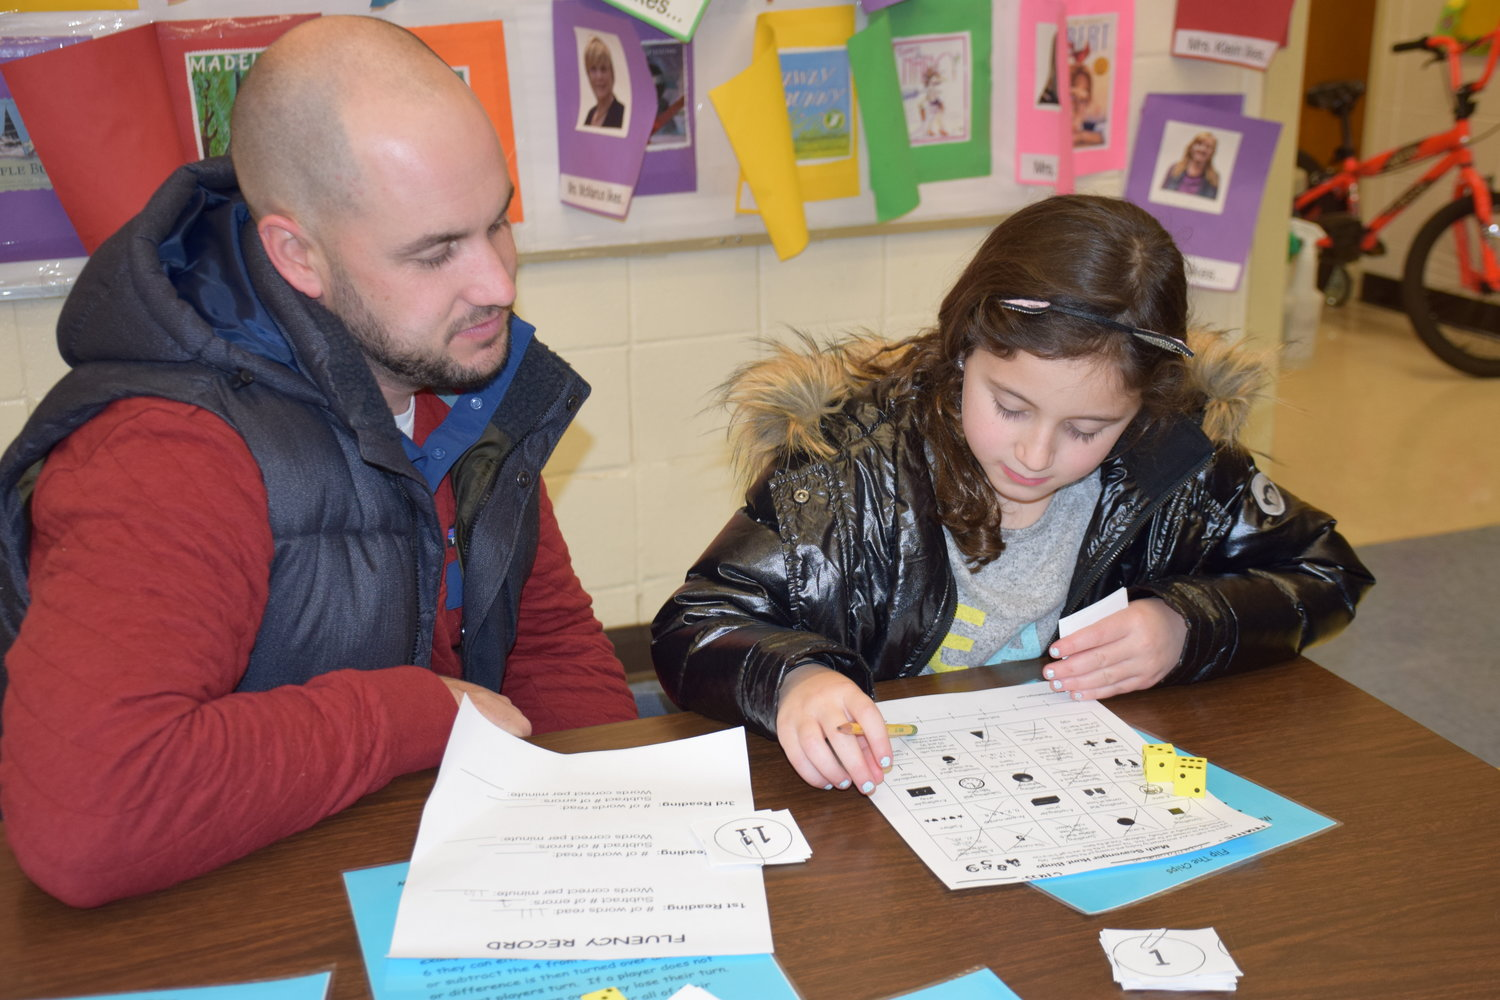 Gianna Calonita came with her father, Richard Calonita, to Bayville Primary's Family Math/ELA Night.